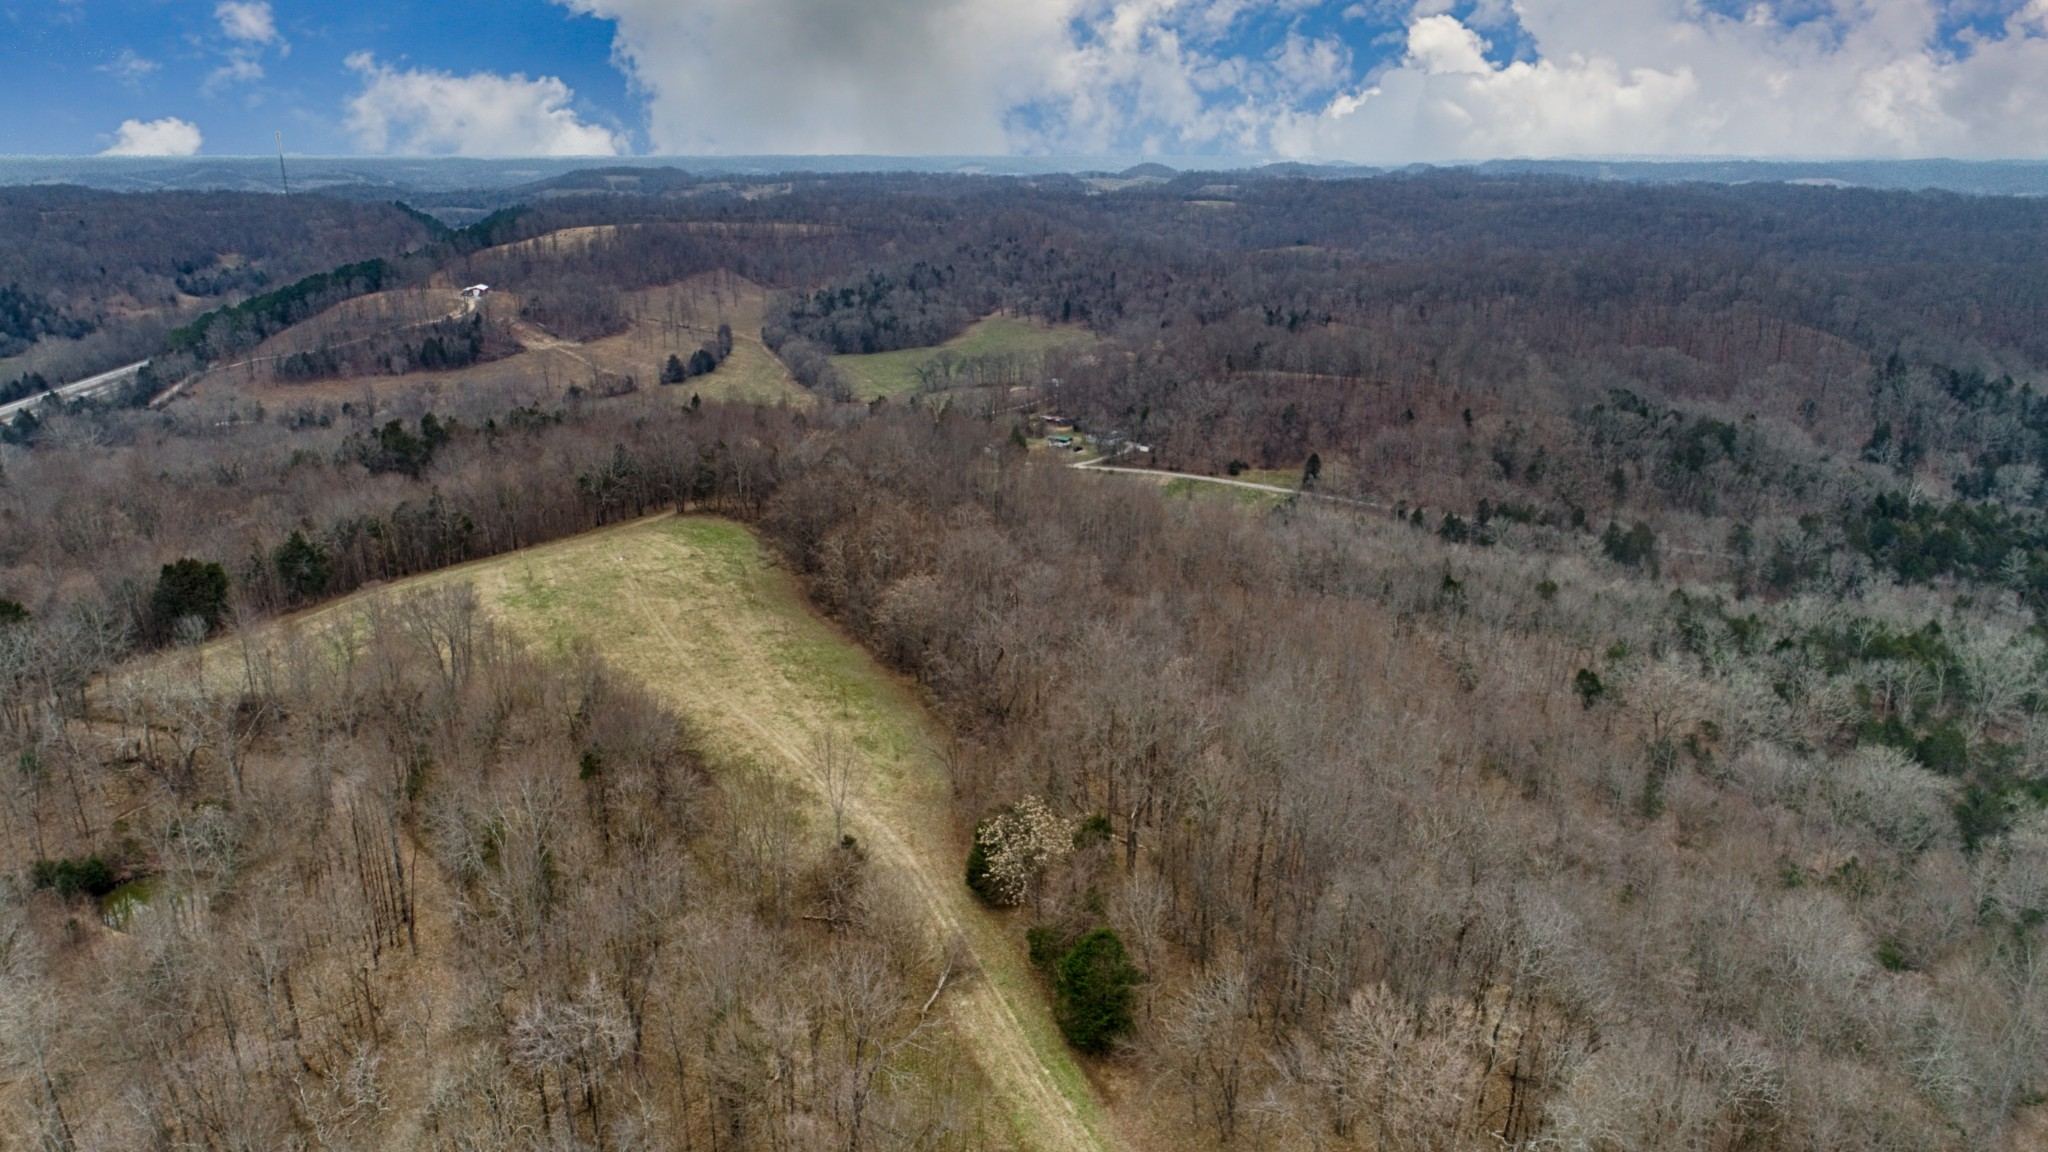 394 Young Hollow Rd, Pulaski, TN 38478 - Pulaski, TN real estate listing